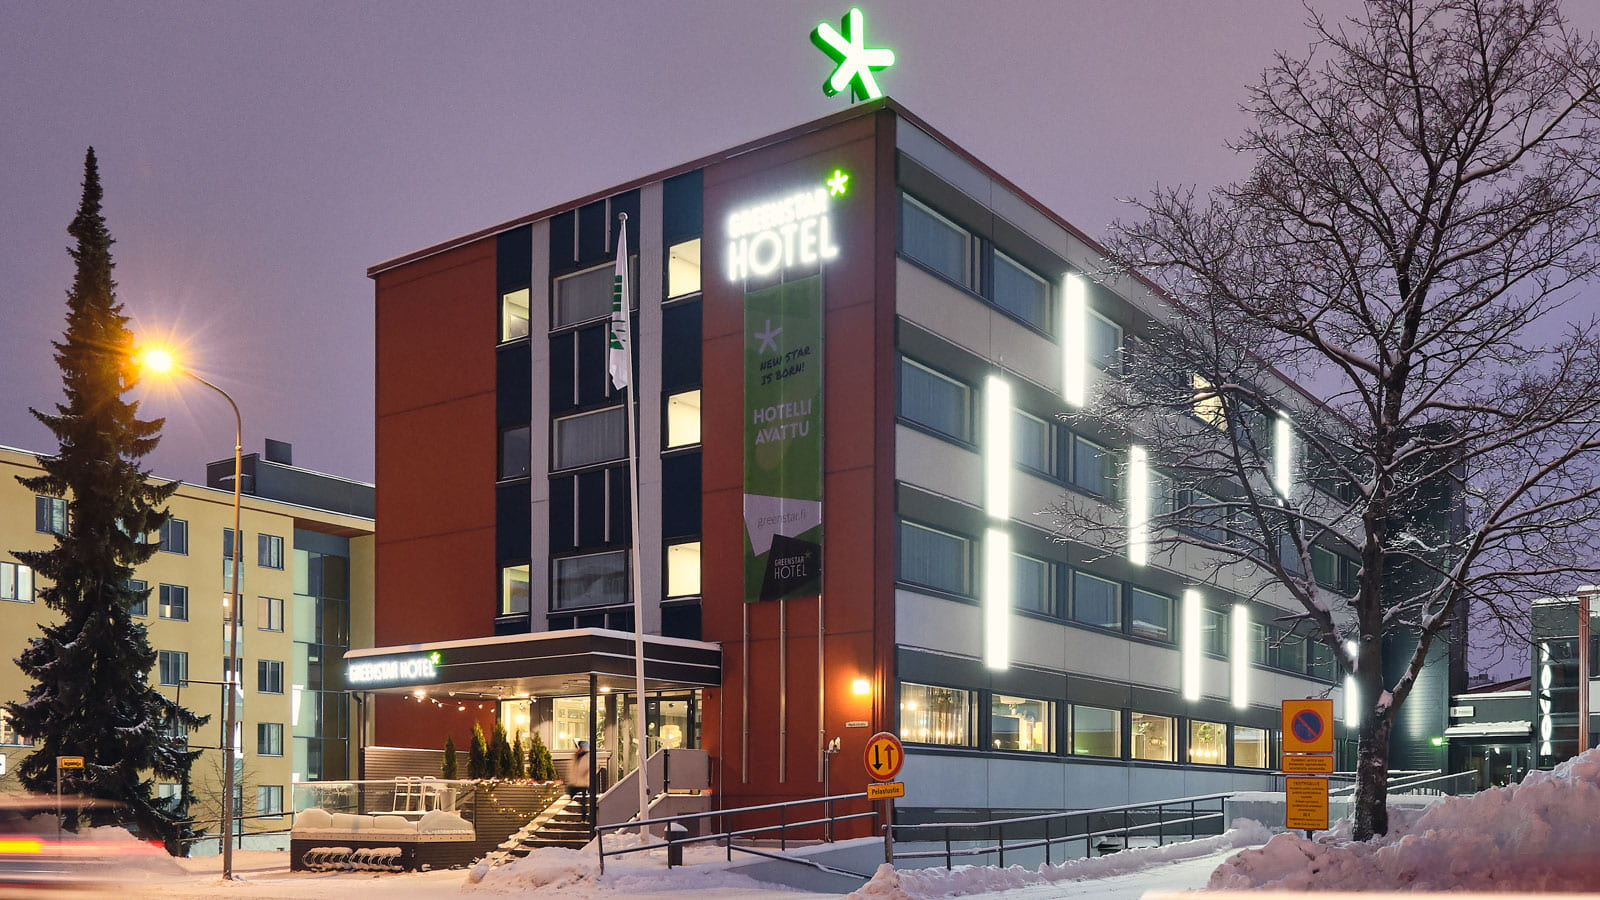 Hotel Green Star building in winter.